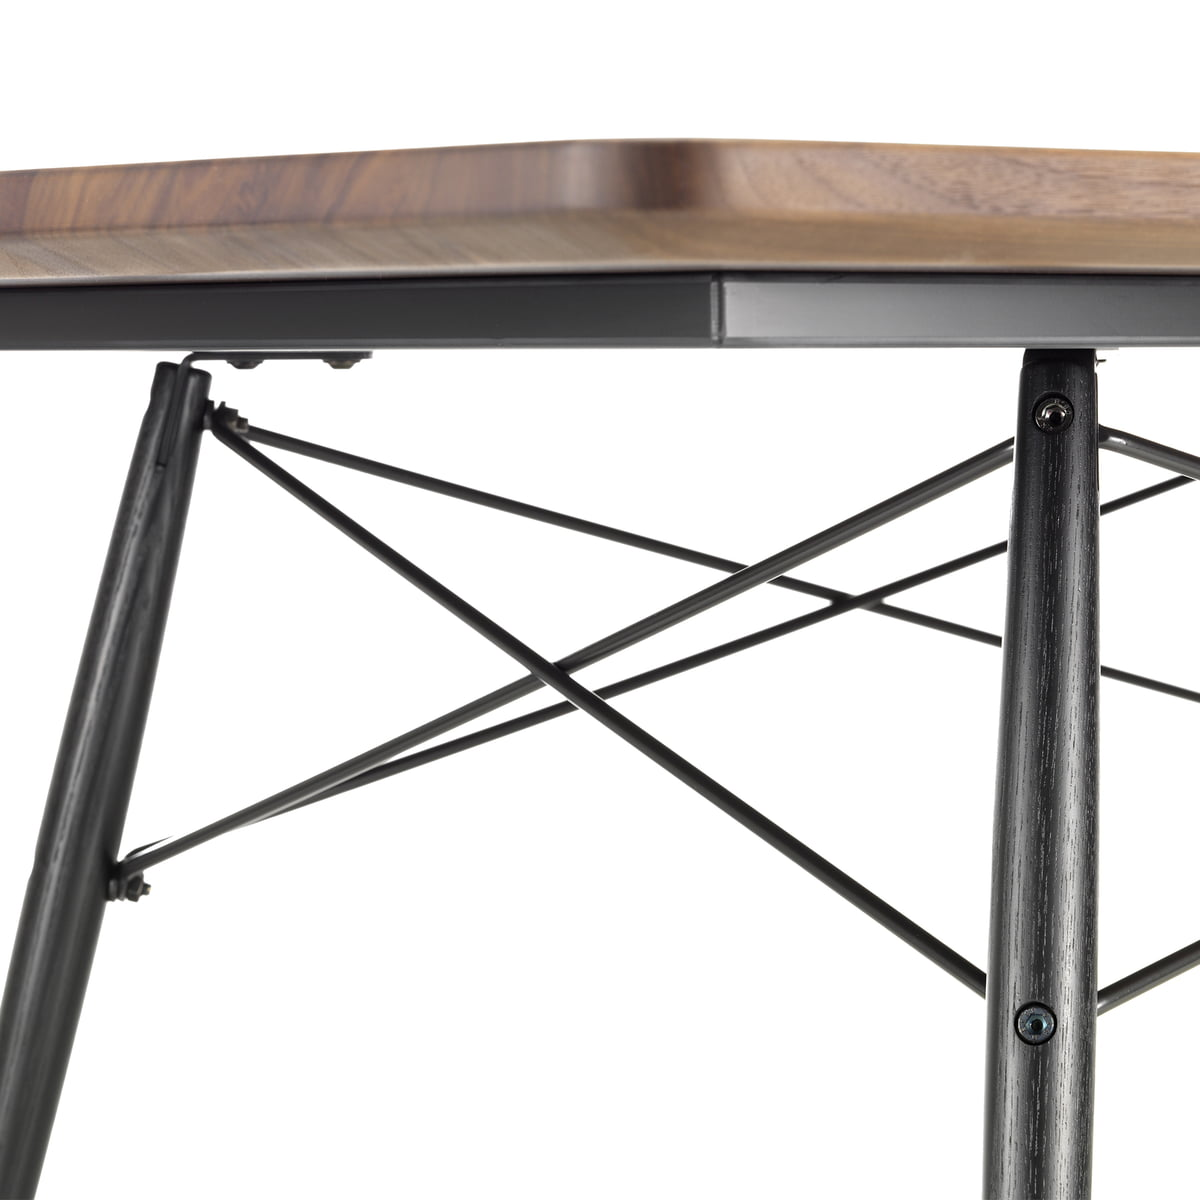 Eames Coffee Table by Vitra in the shop